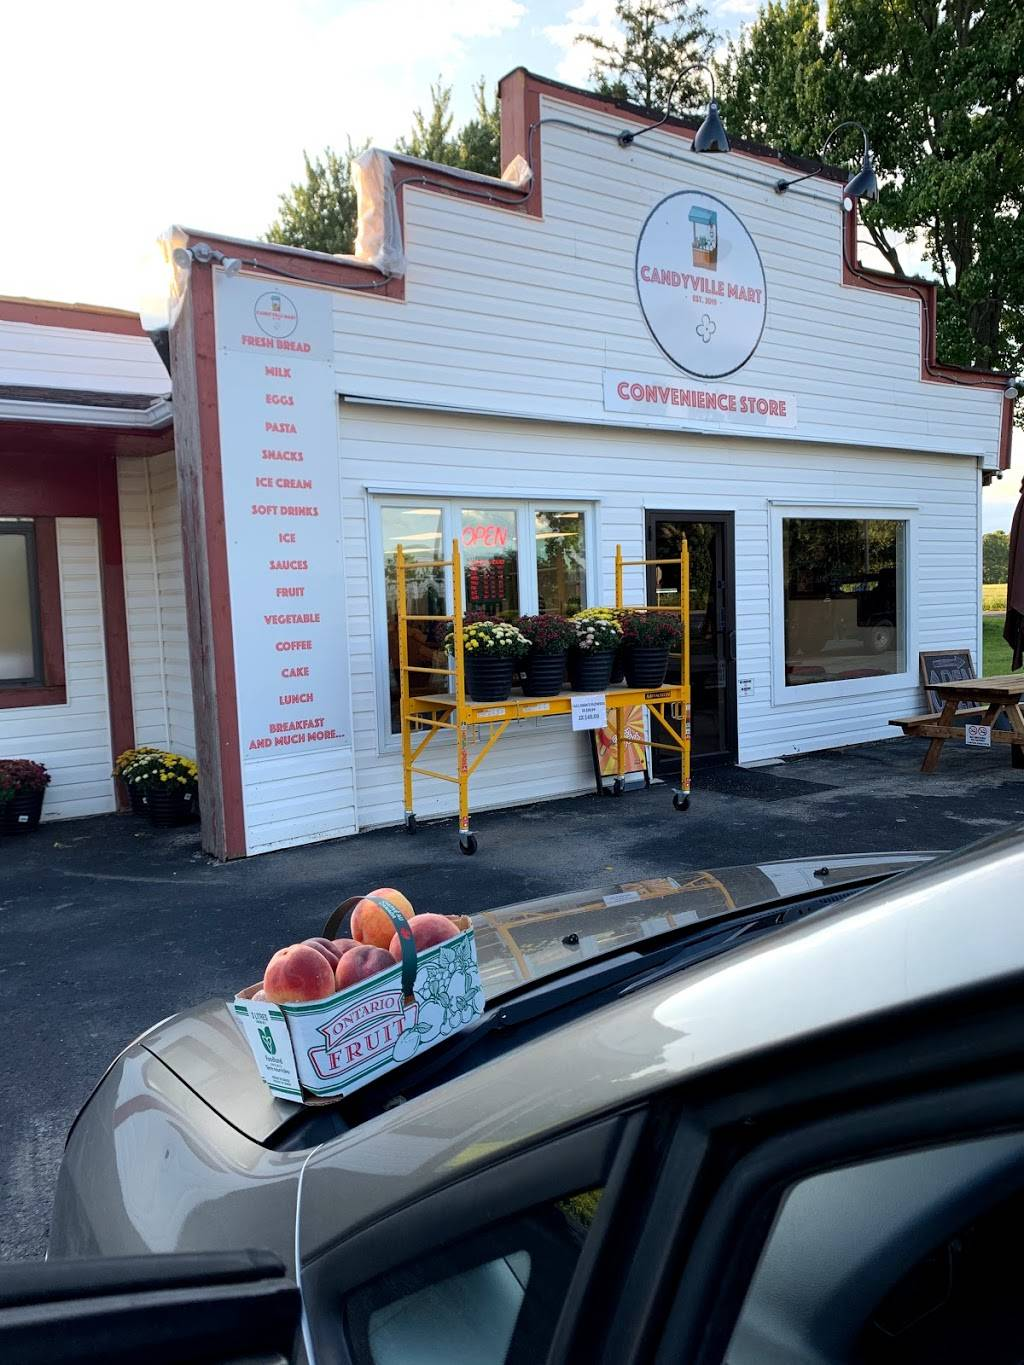 Candyville Mart   meal delivery   5843 Imperial Rd, Aylmer, ON N5H 2R2, Canada   5197651191 OR +1 519-765-1191